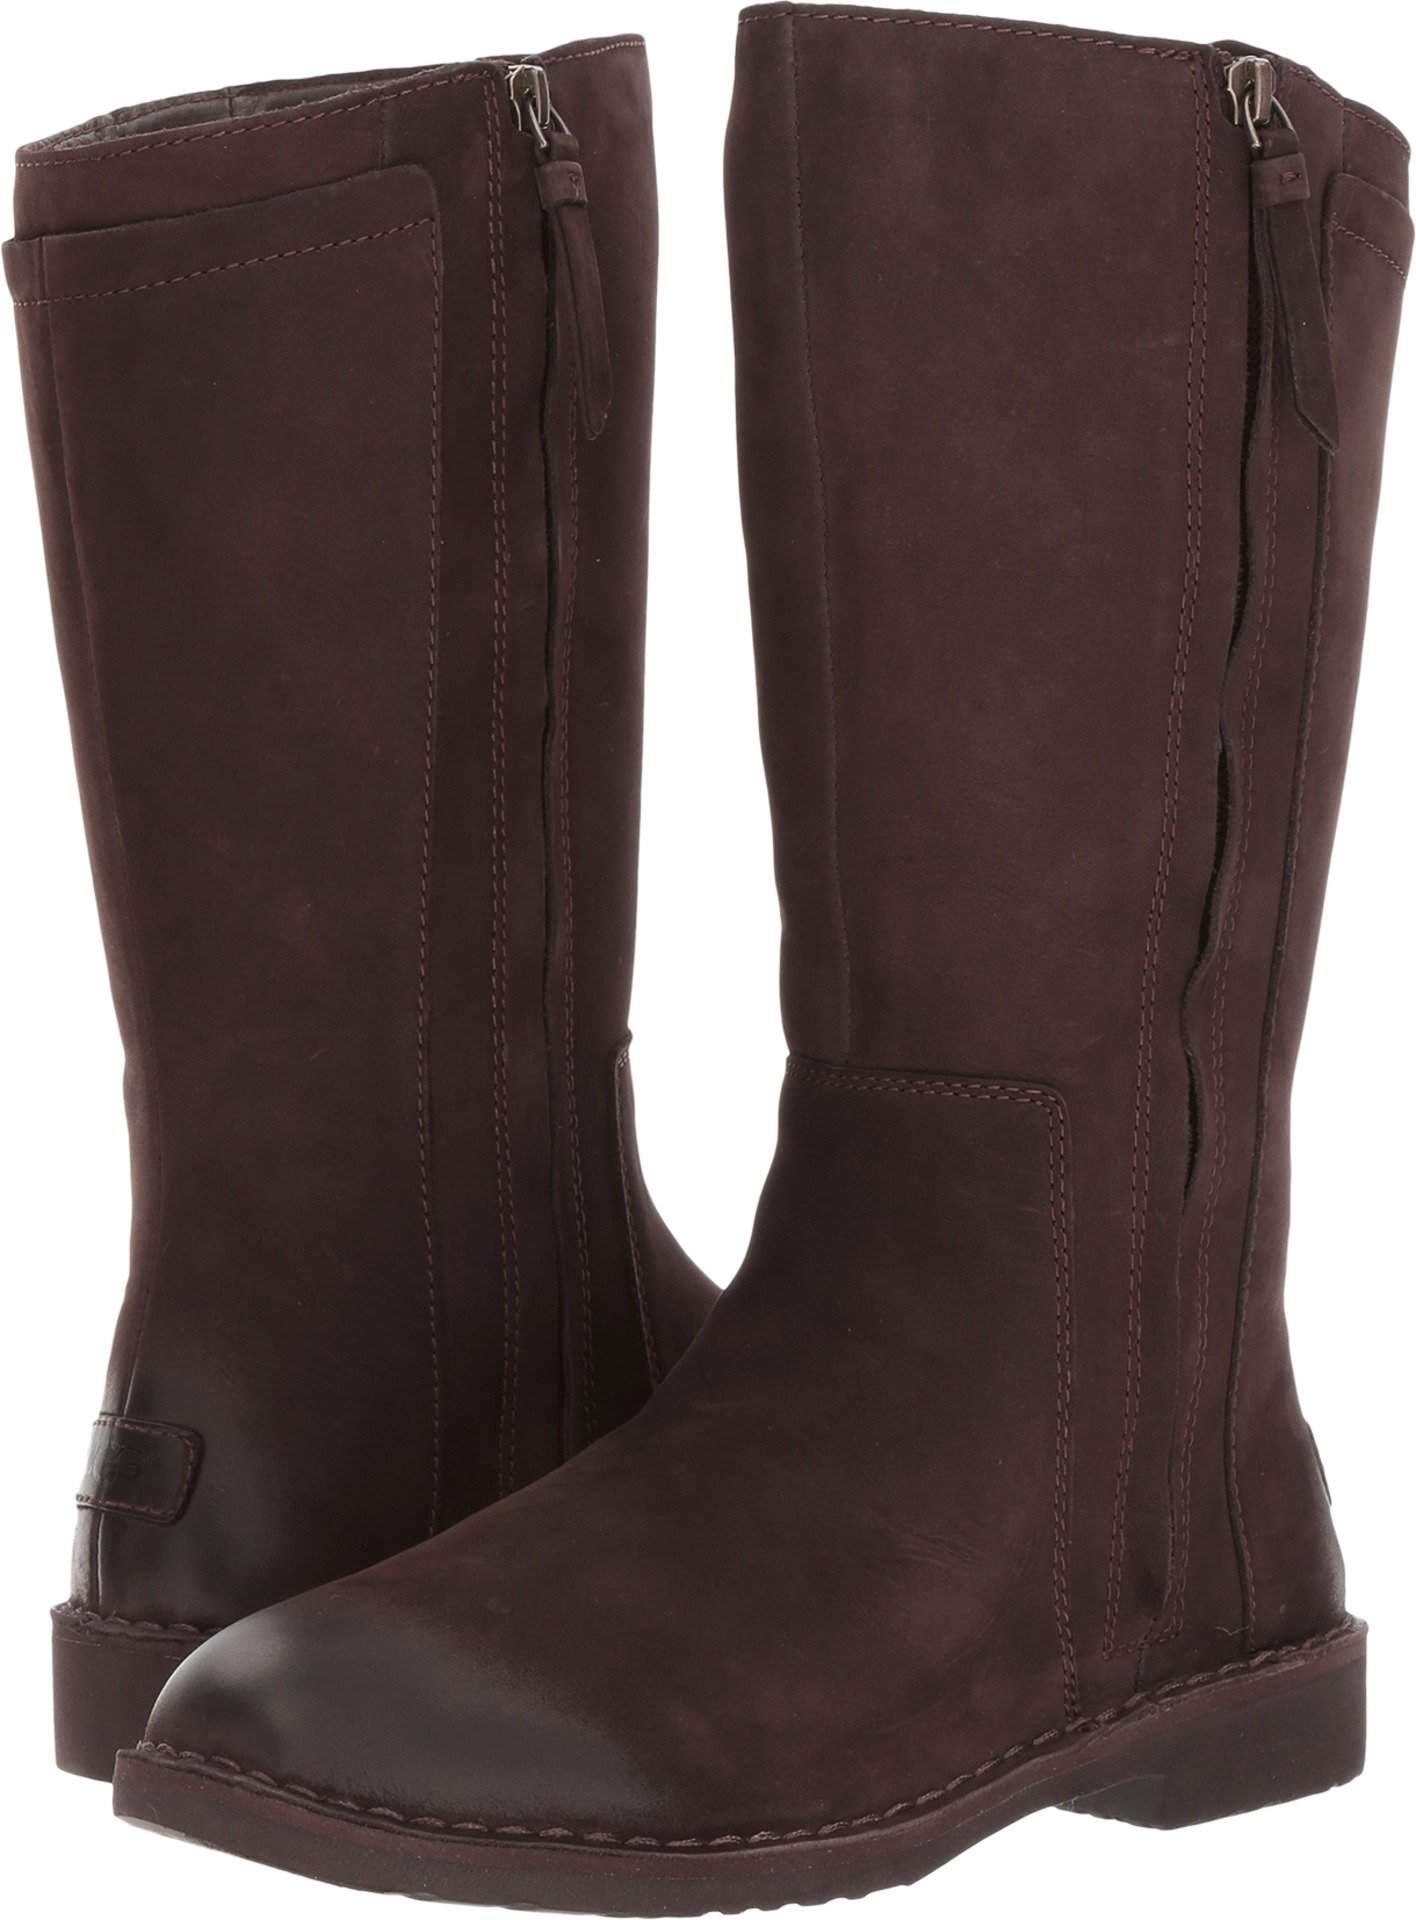 UGG Women's Elly Winter Boot, Stout, 8 M US